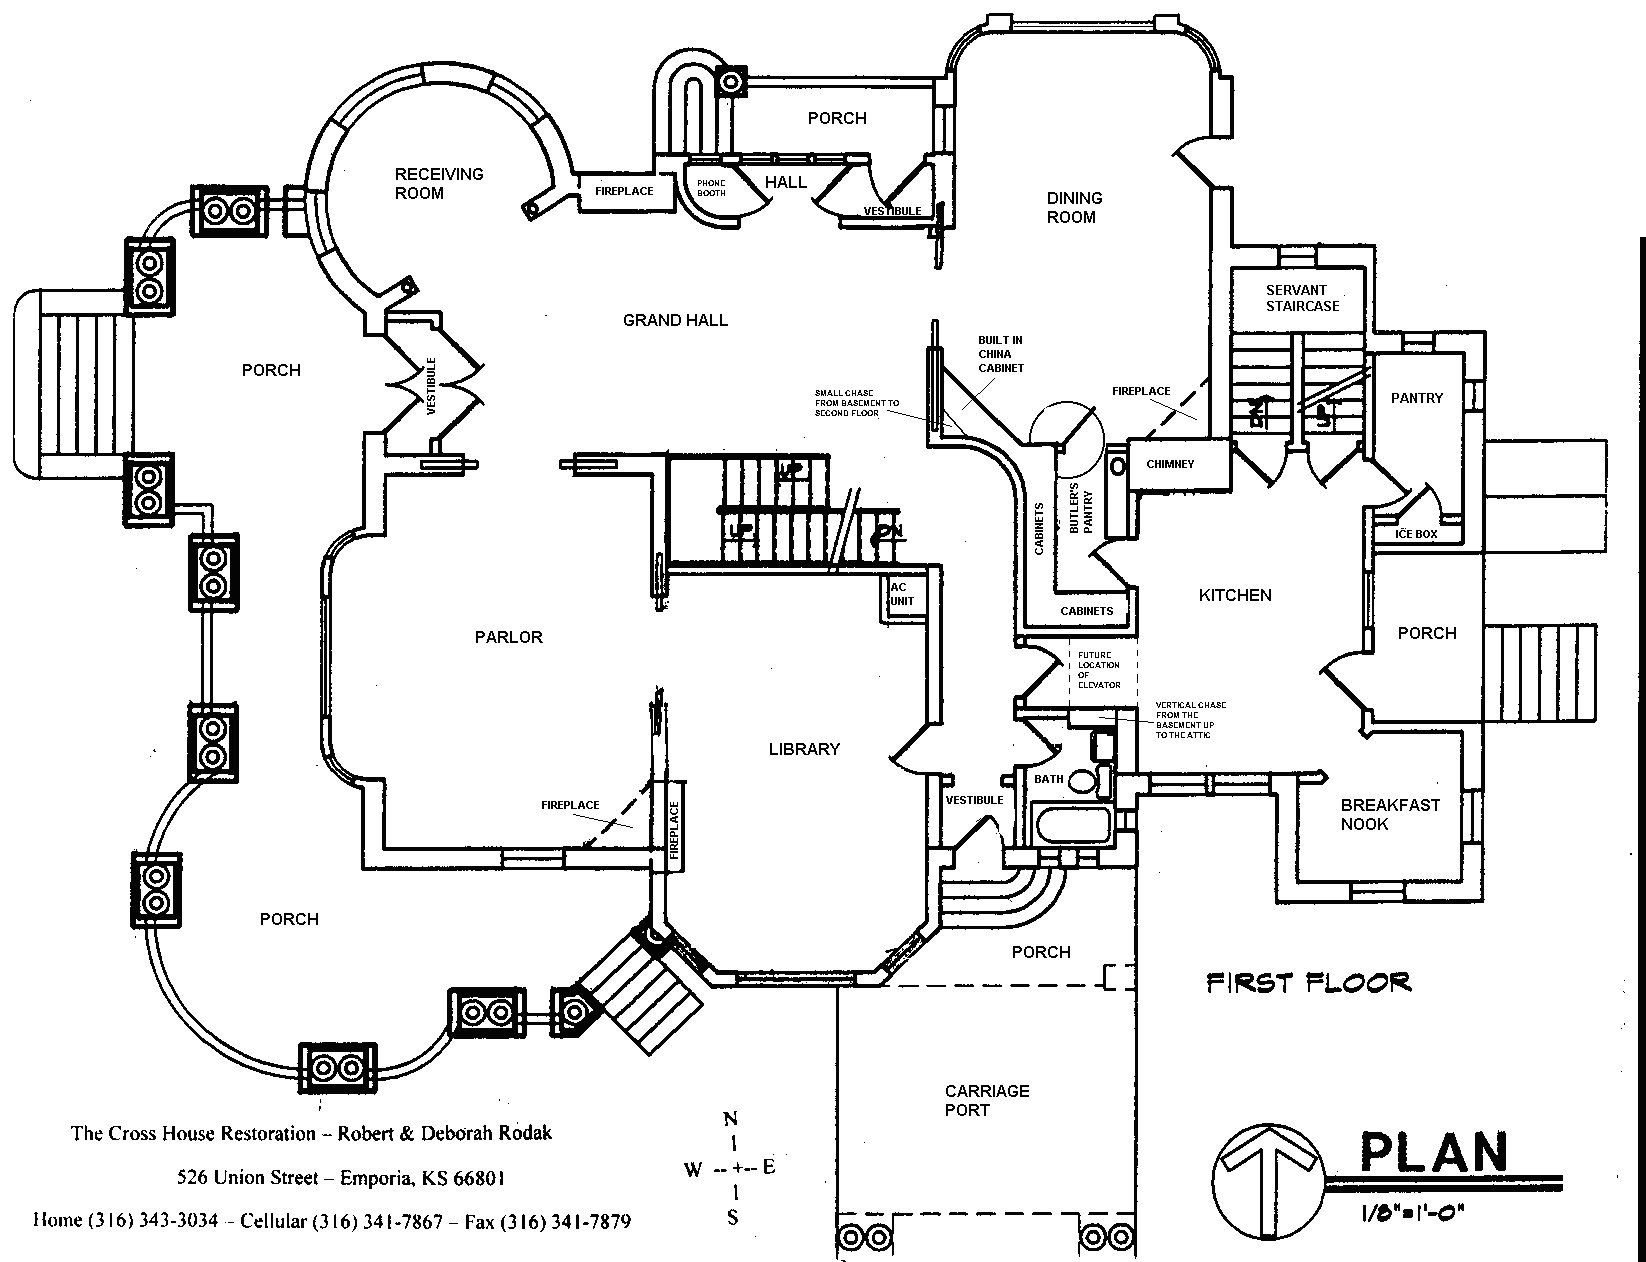 Cross house restoration floor plans and blueprints Building plan printing